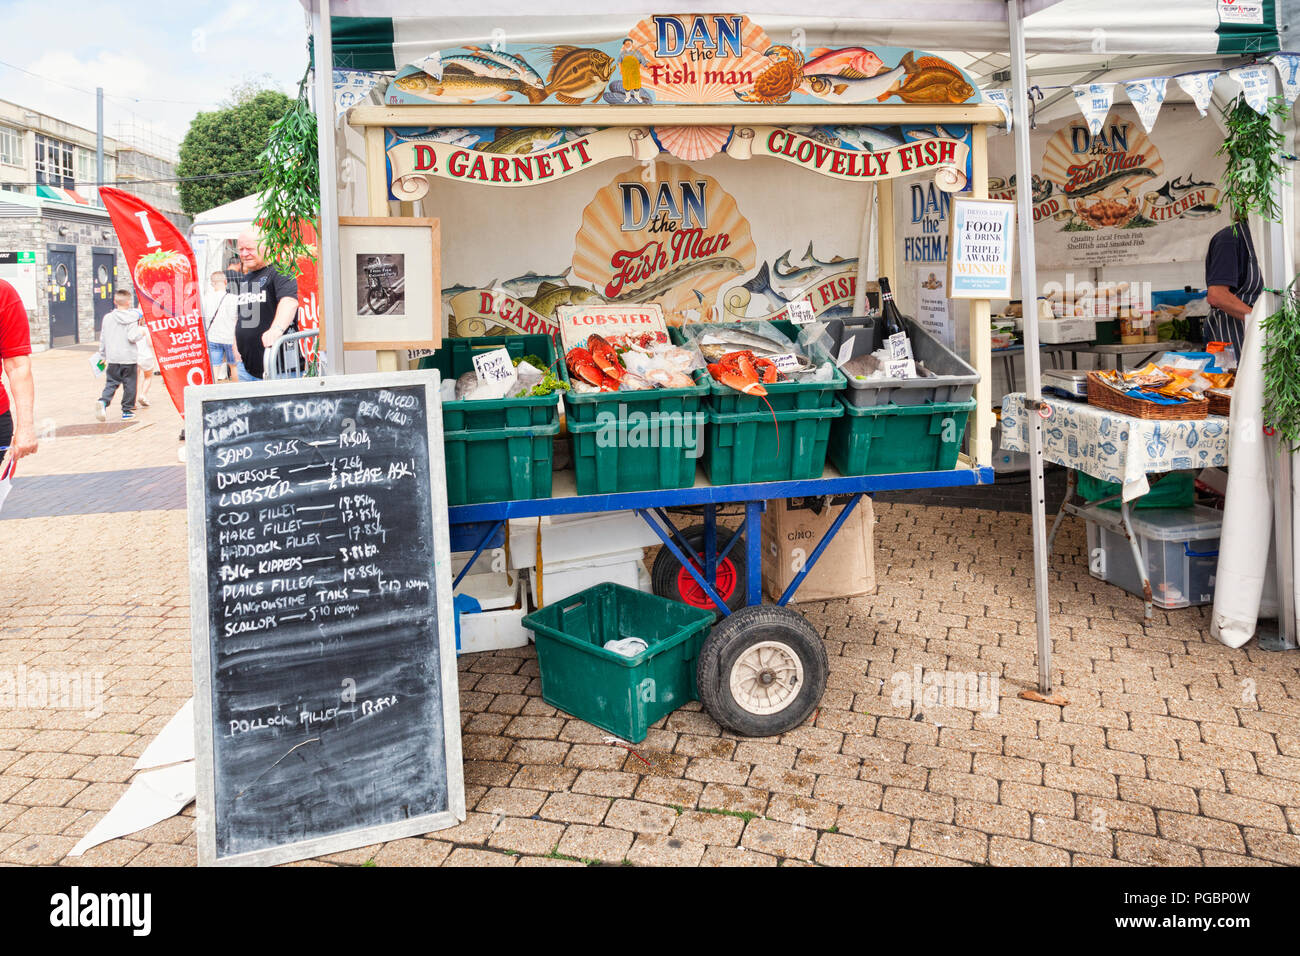 2 June 2018: Plymouth, Devon, UK - A fish stall at Flavour Fest, Plymouth, Devon, UK - Stock Image